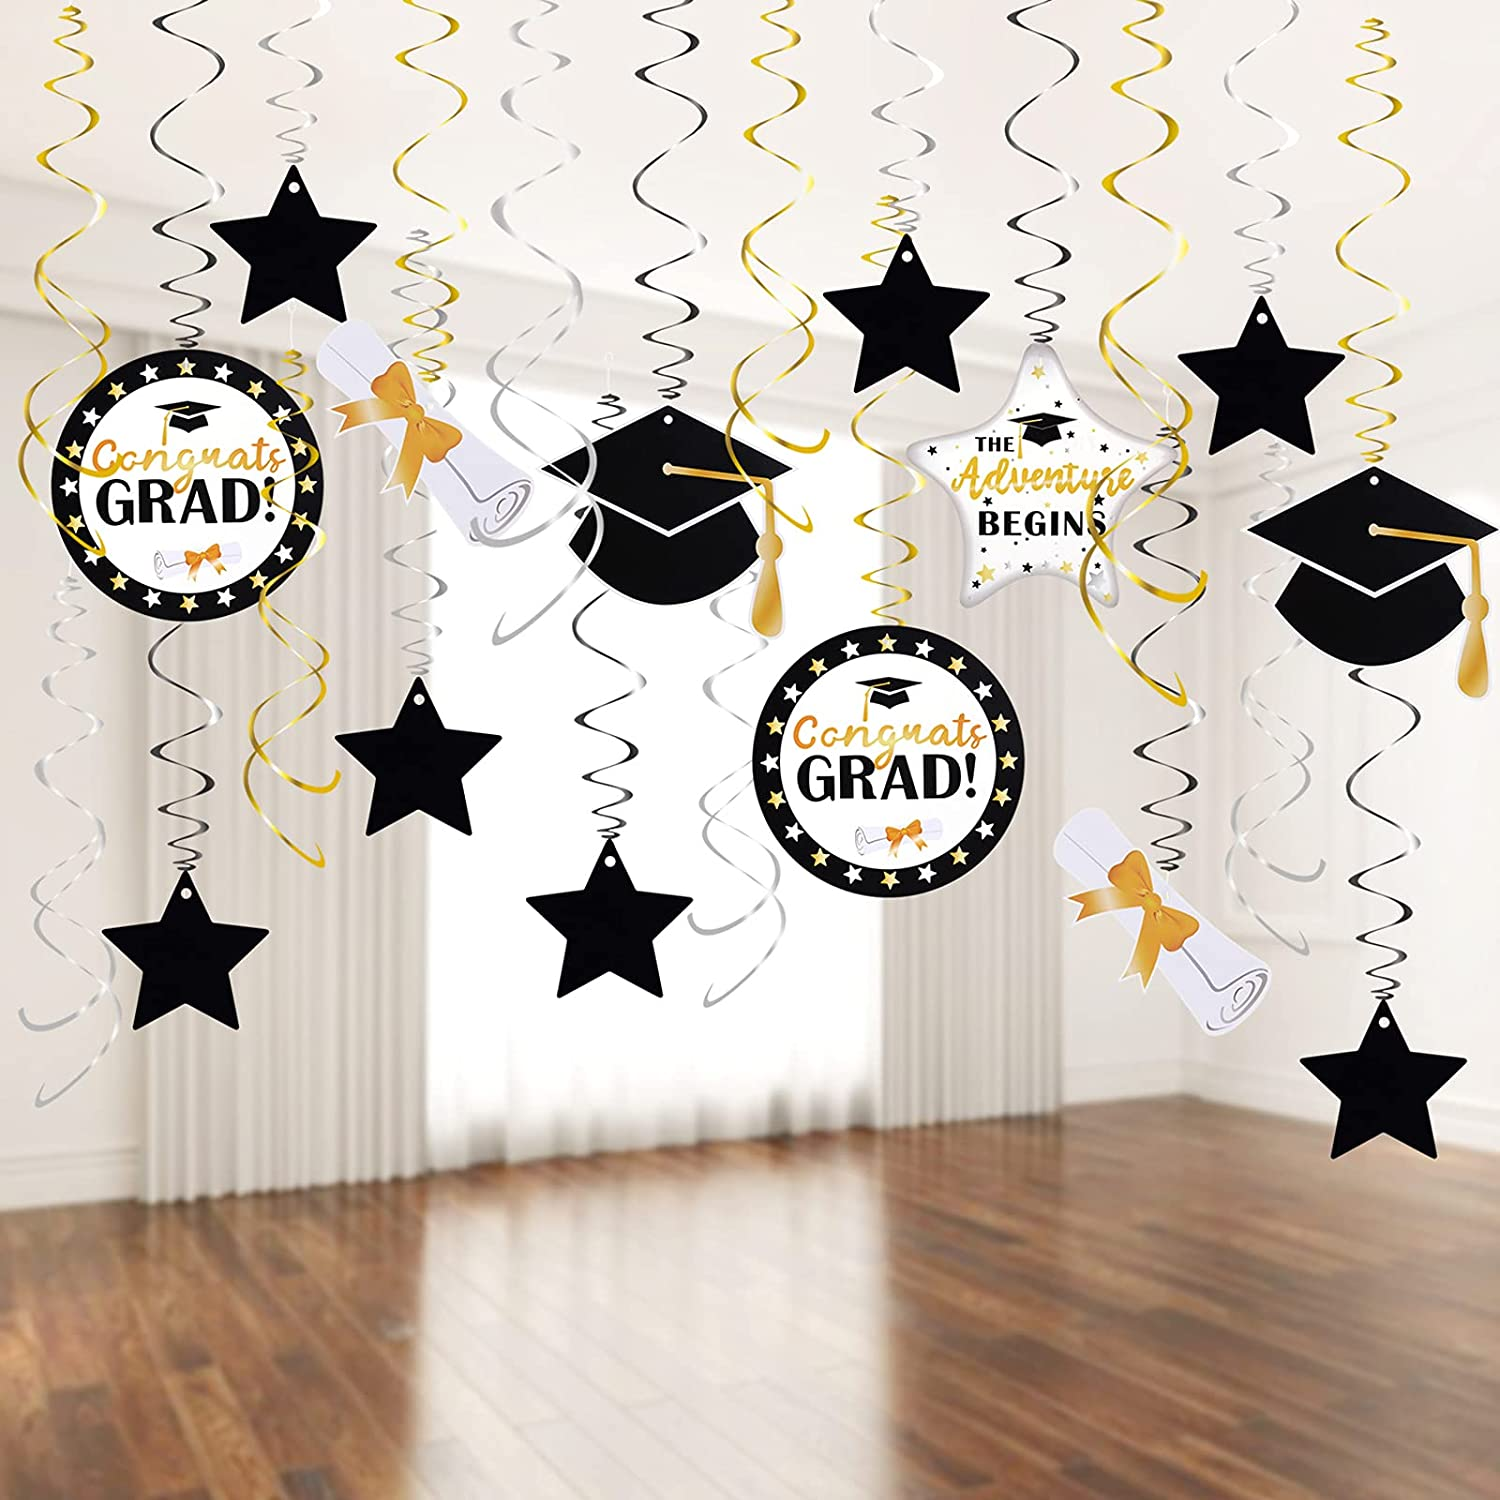 Graduation Decorations 2021 Graduation Party Supplies 2021 Graduation Party Hanging Swirl Grad Decor 2021 Grad Decorations Congrats Grad Gold Black Silver Hanging Swirl Already Assembled by HappyField